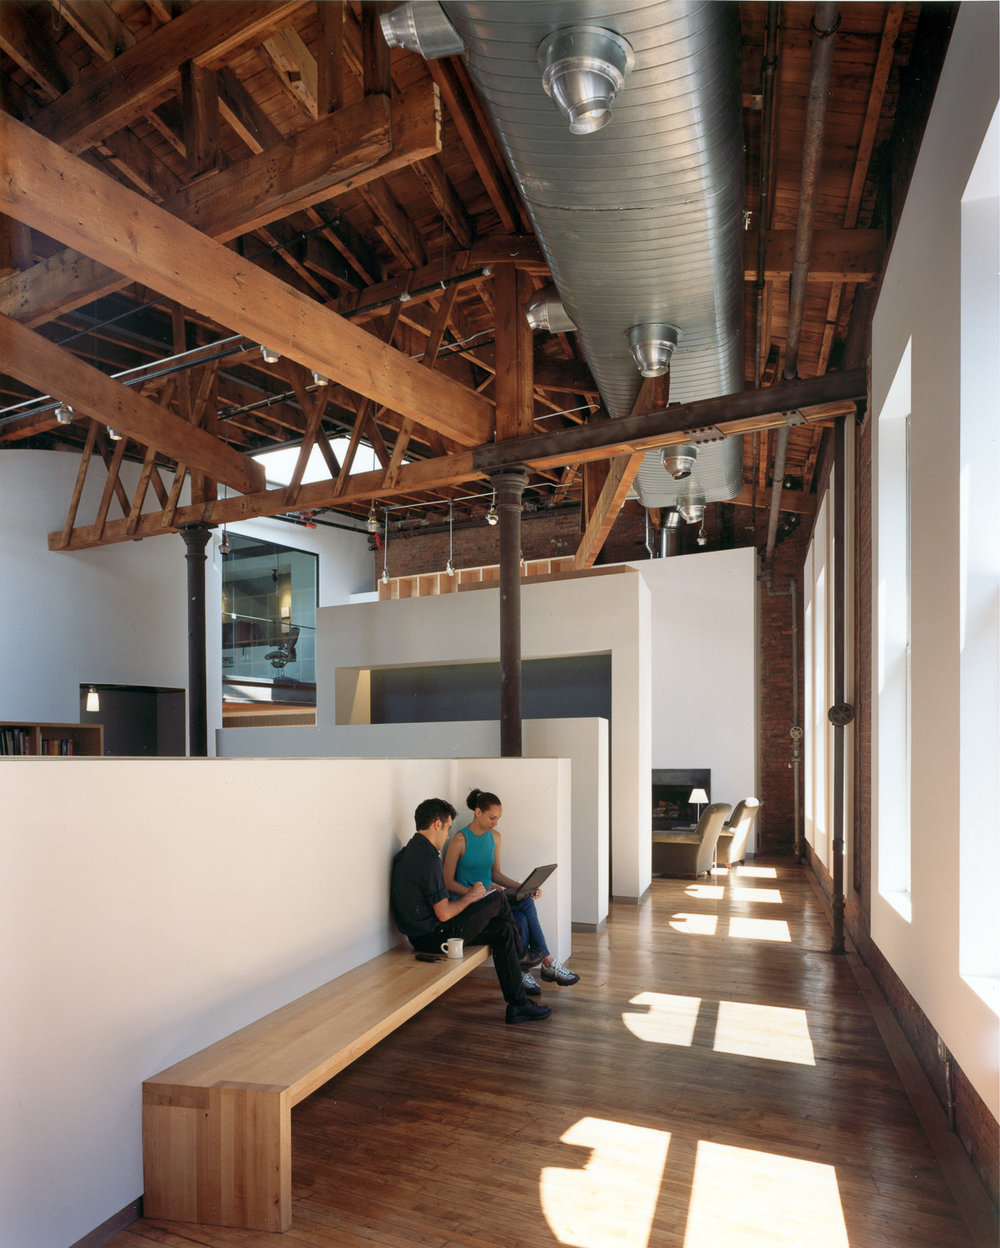 A renovated workspace. M&C Saatchi Agency. Think! Architecture & Design